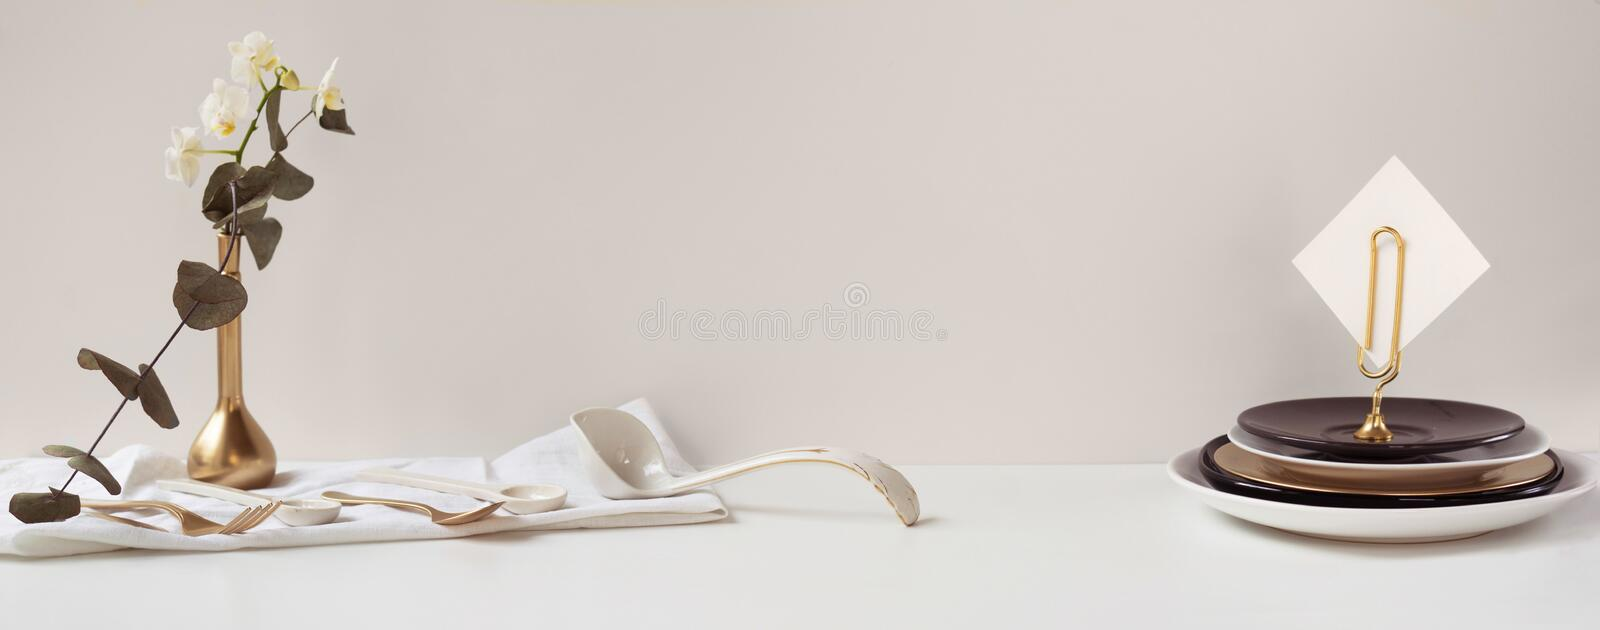 Header, banner for site design. Set of dishes for serving. Horizontal format, space for text stock image